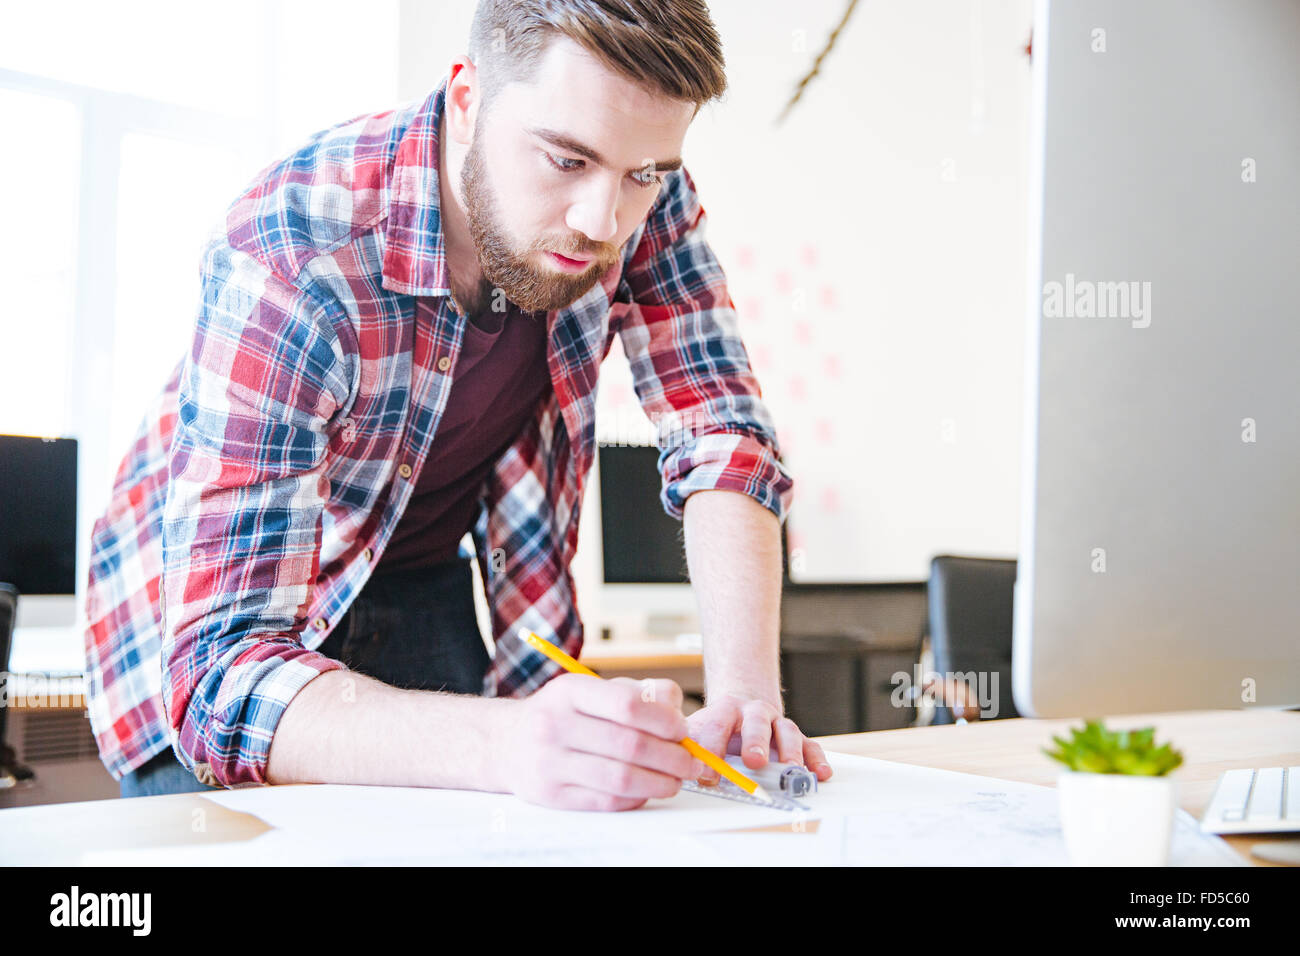 Concentrated handsome man in checkered shirt working and drawing blueprint with ruler and pencil - Stock Image